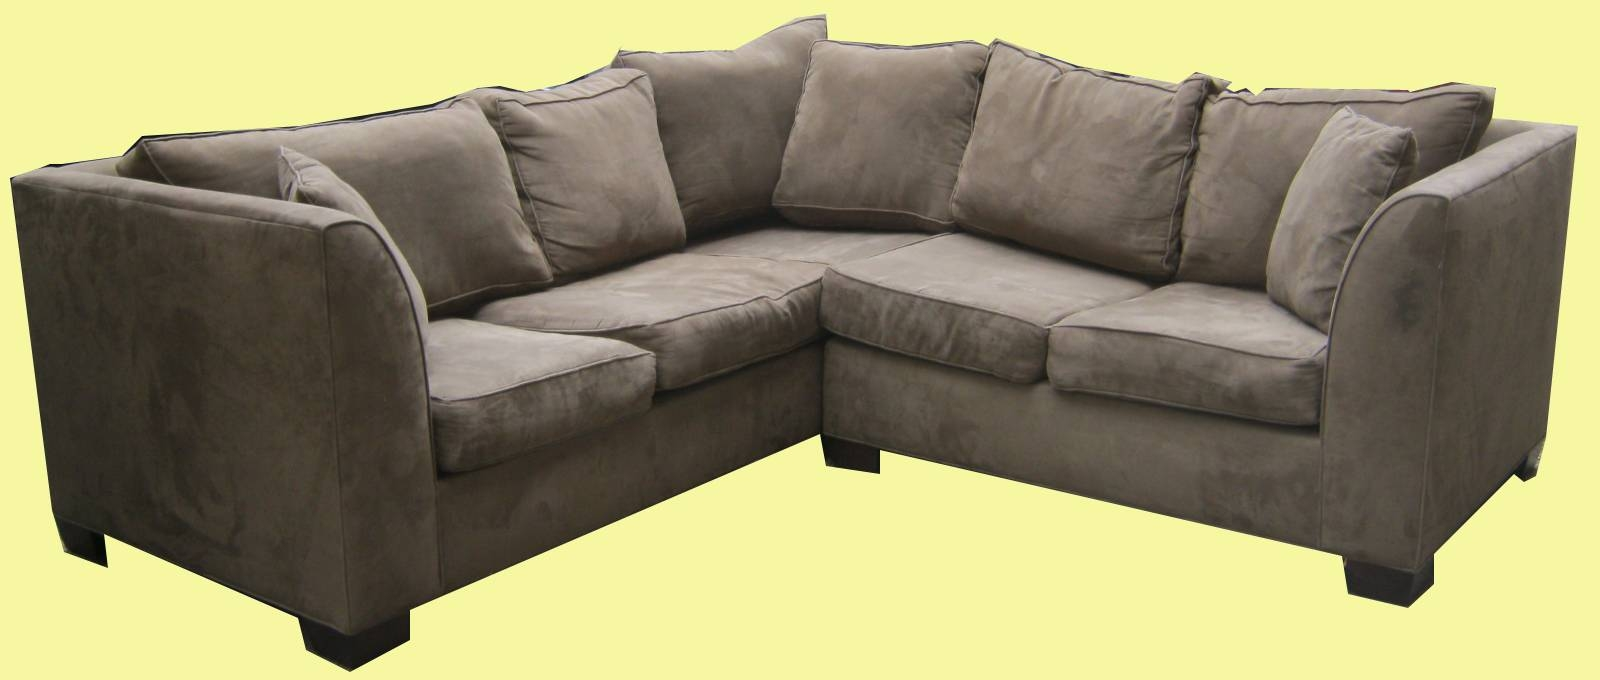 Uhuru Furniture & Collectibles: Olive Green 2 Pc Sectional Sofa Sold for Olive Green Sectional Sofas (Image 15 of 15)